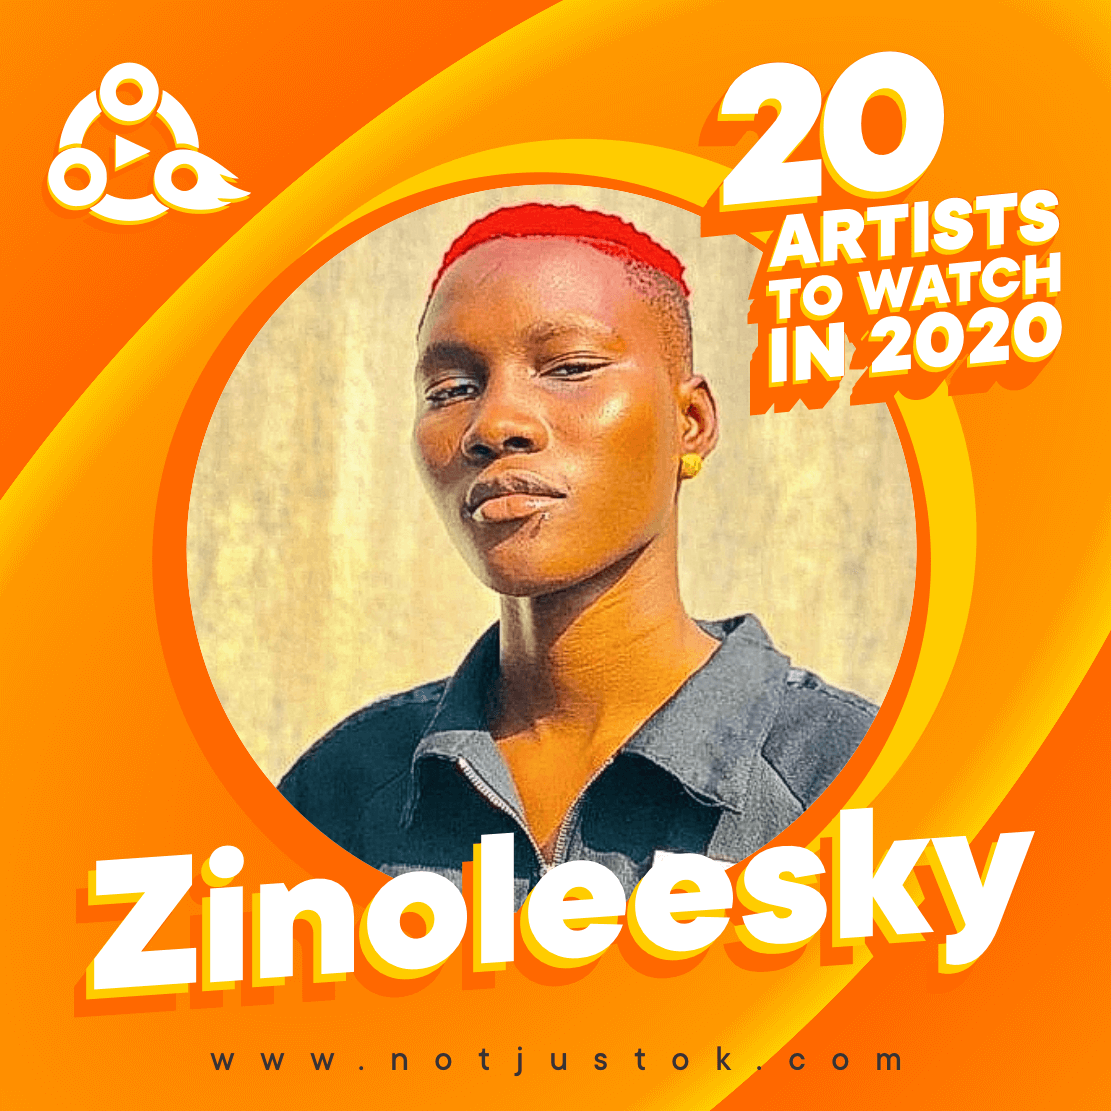 The 20 Artists To Watch In 2020